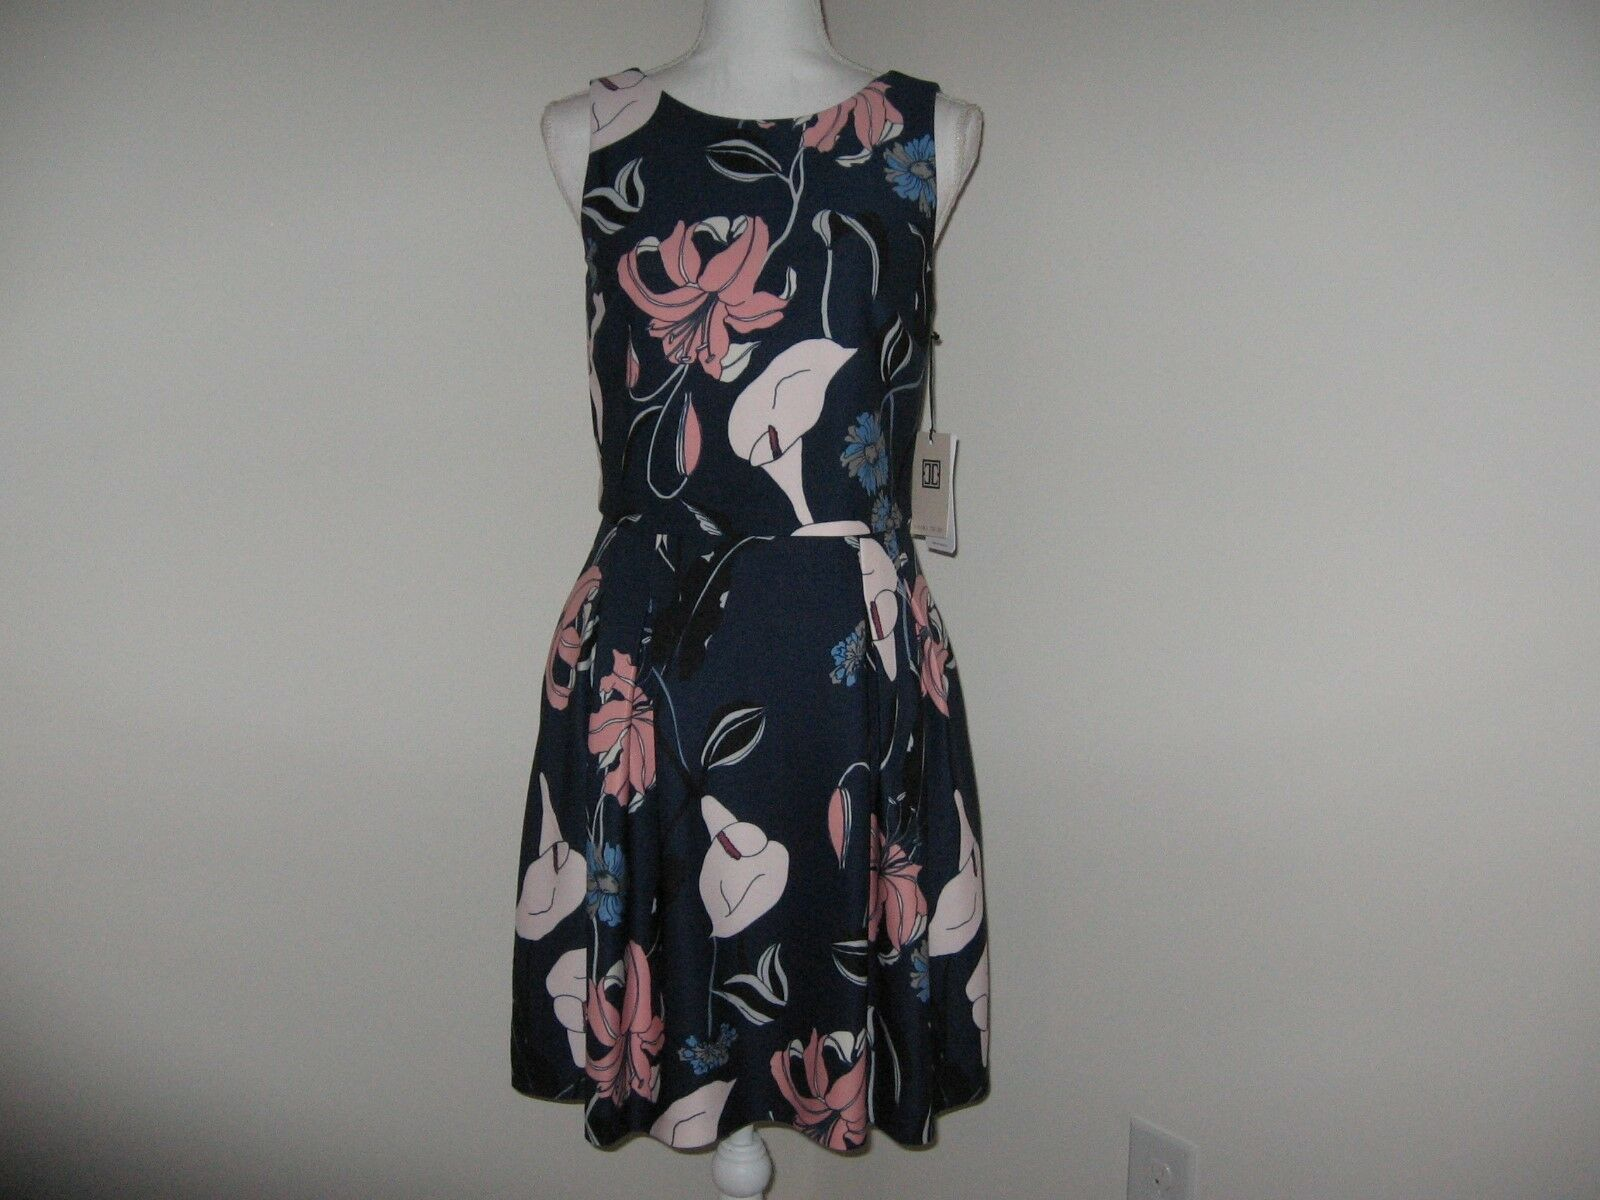 Ivanka Trump Floral-Print Popover Dress for Woman Size 2 12  NWT 138